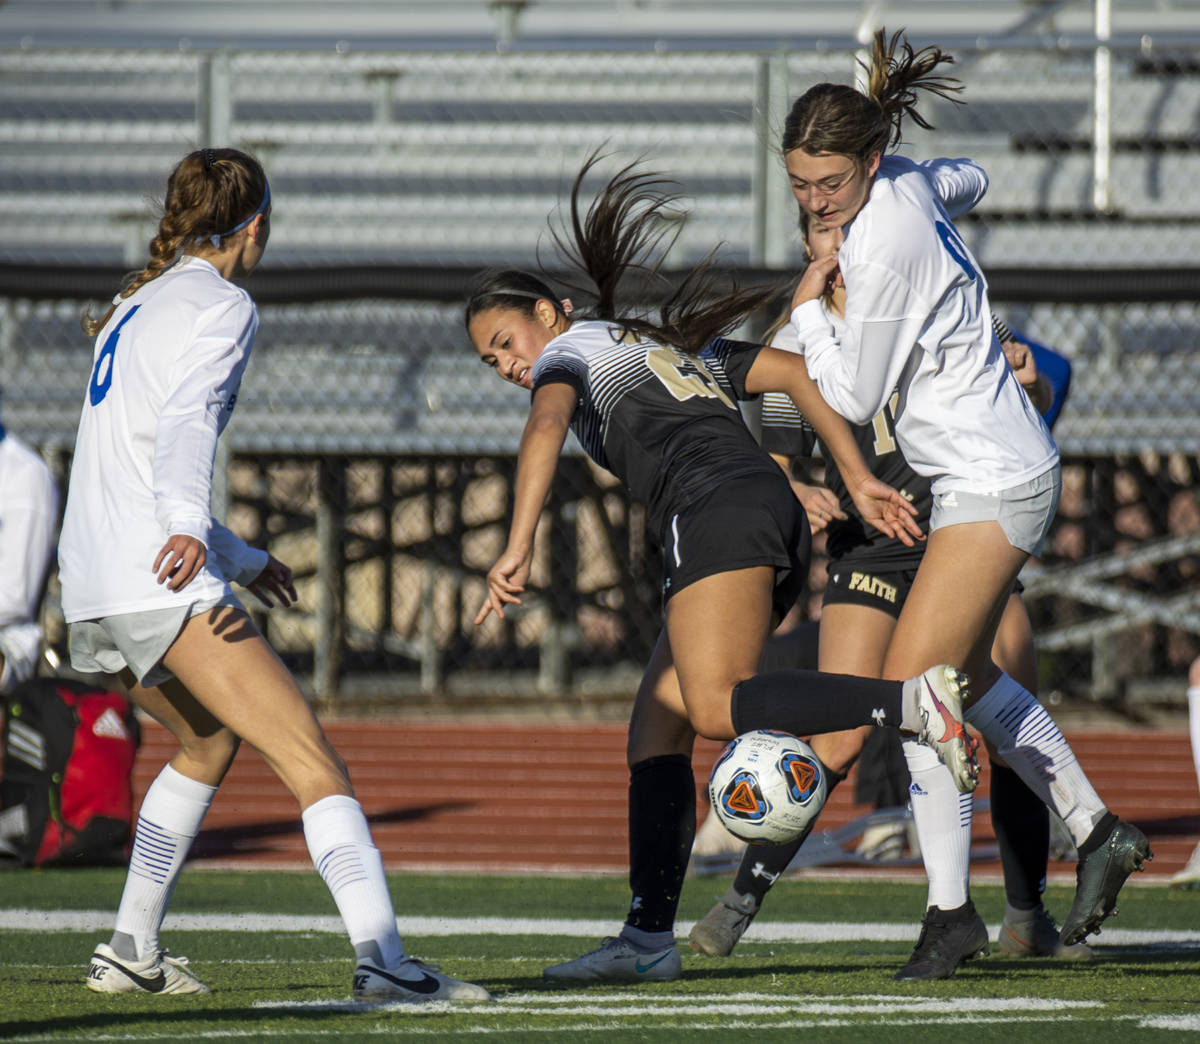 Faith Lutheran's Aurrianna Parker (21, center) fights for the ball with Bishop Gorman's Rachel ...